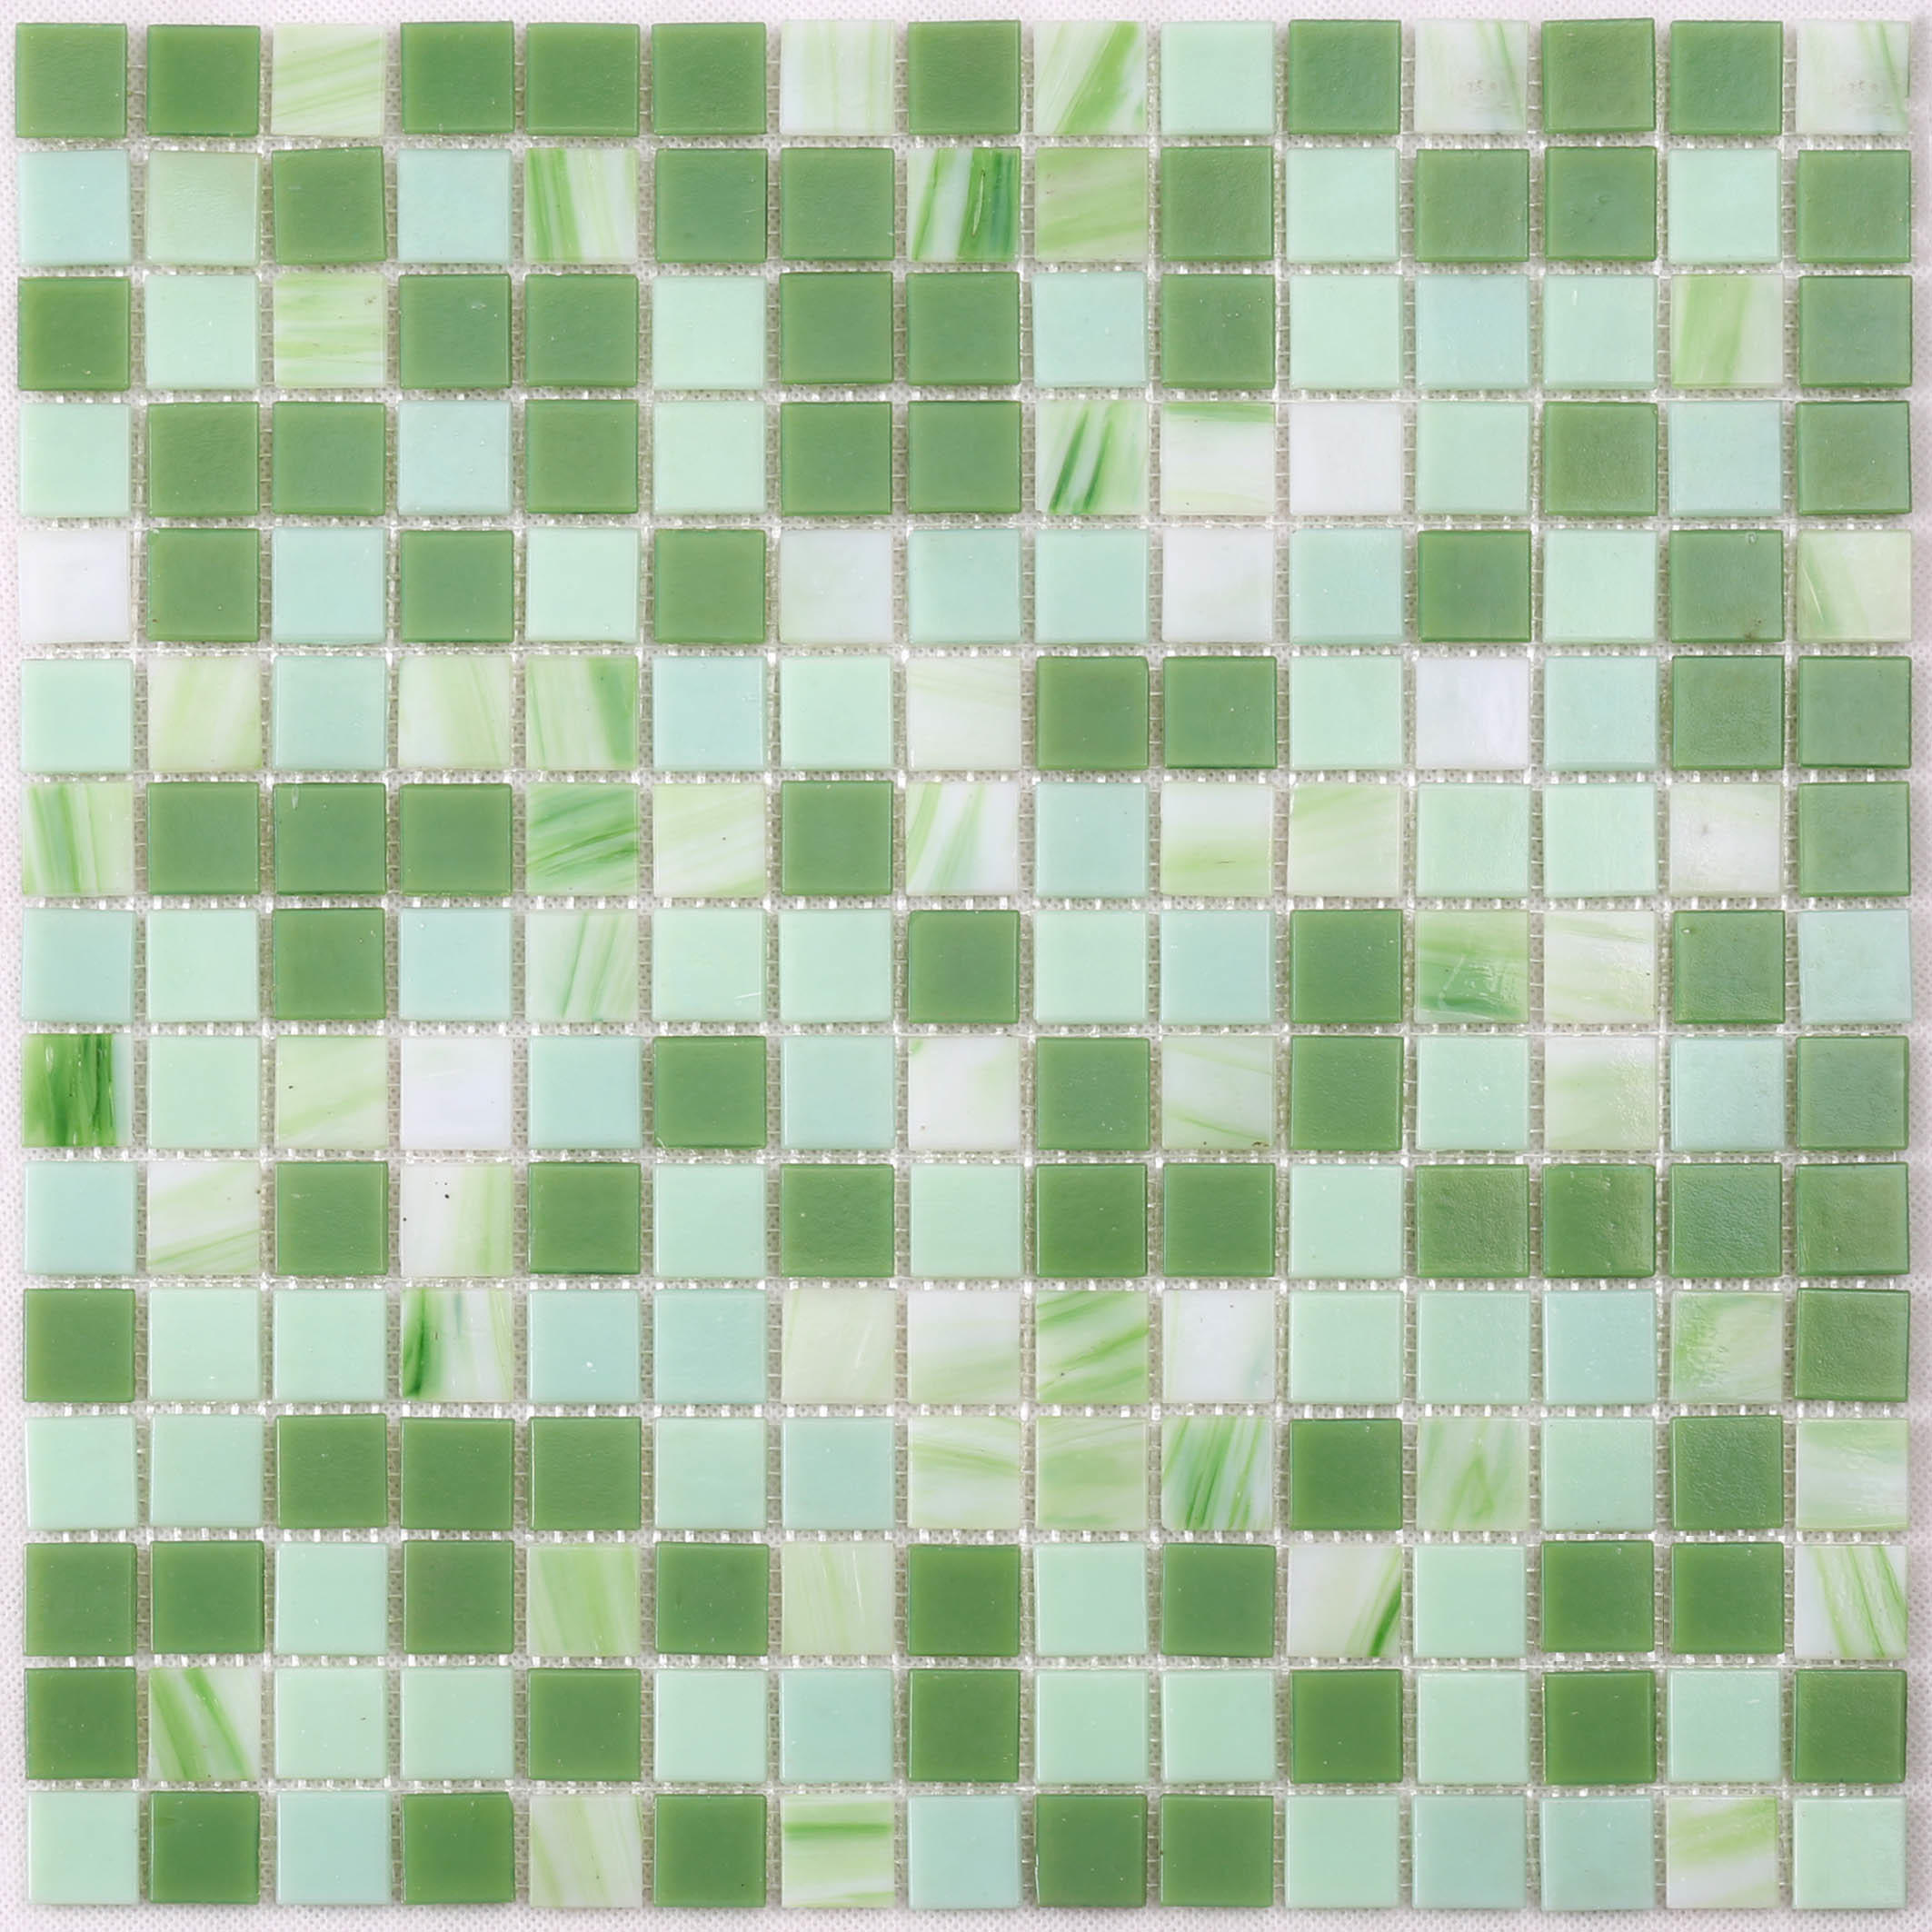 Heng Xing floor ceramic mosaic tile Suppliers for bathroom-1